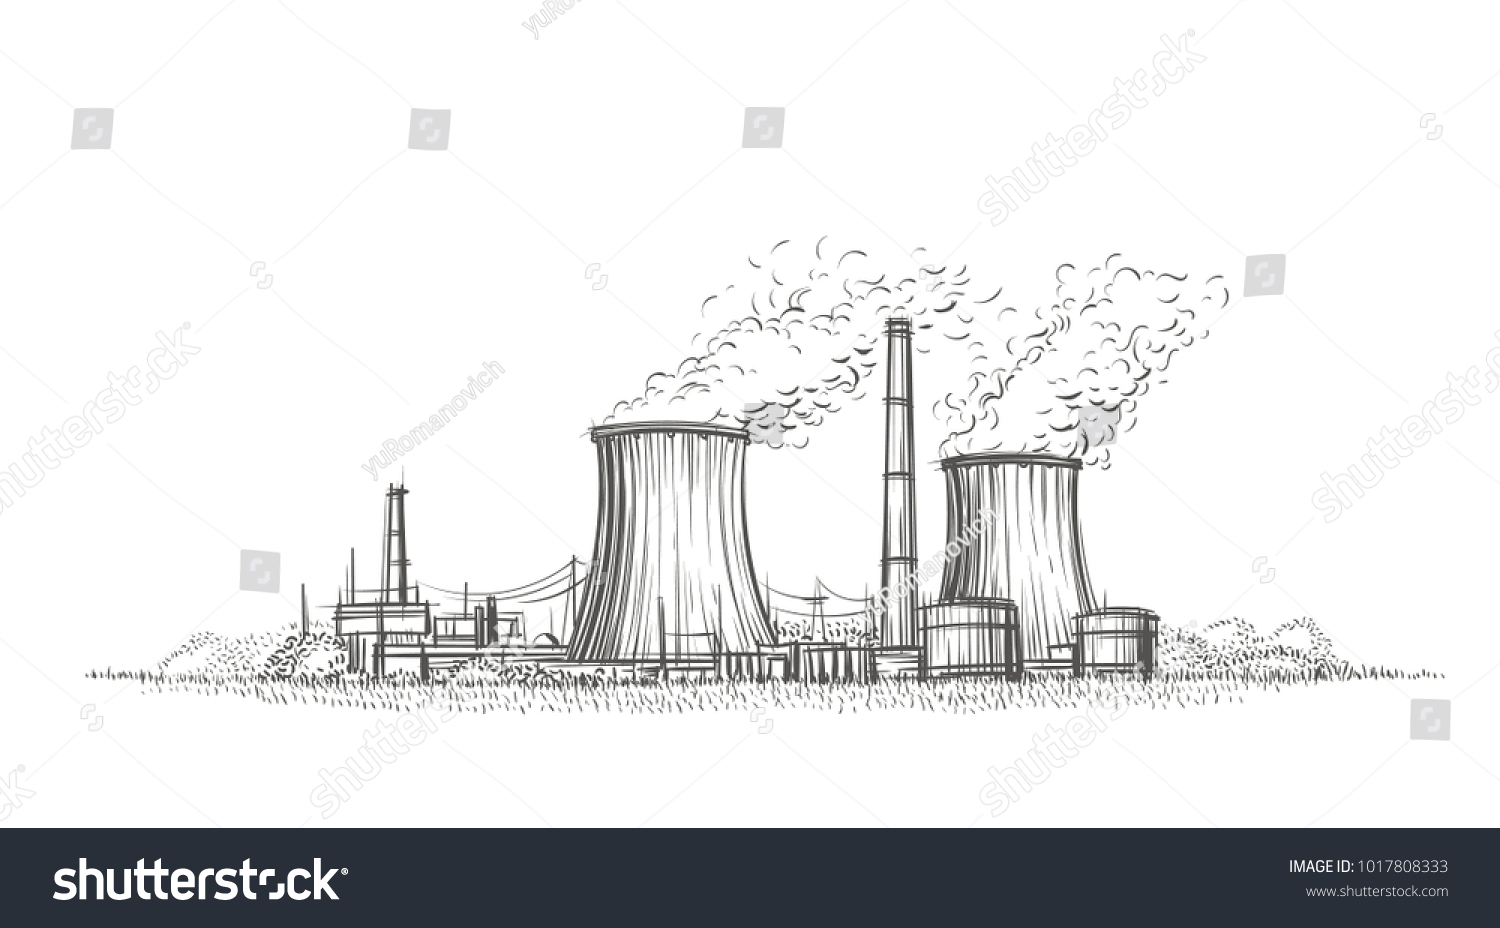 Nuclear Power Plant Hand Drawn Sketch Stock Vector Royalty Free Schematic Diagram